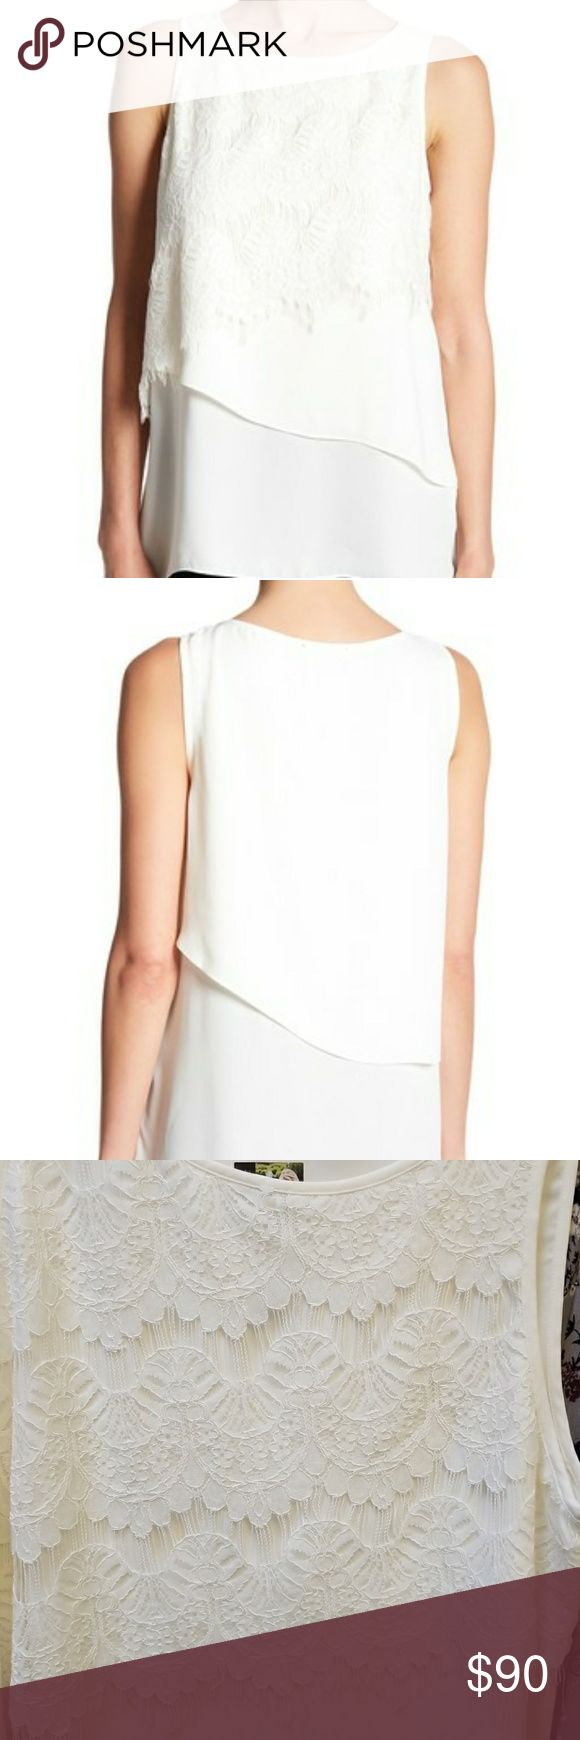 NWT Karen Kane Ivory top Brand new with tags ivory lace top Karen Kane Tops